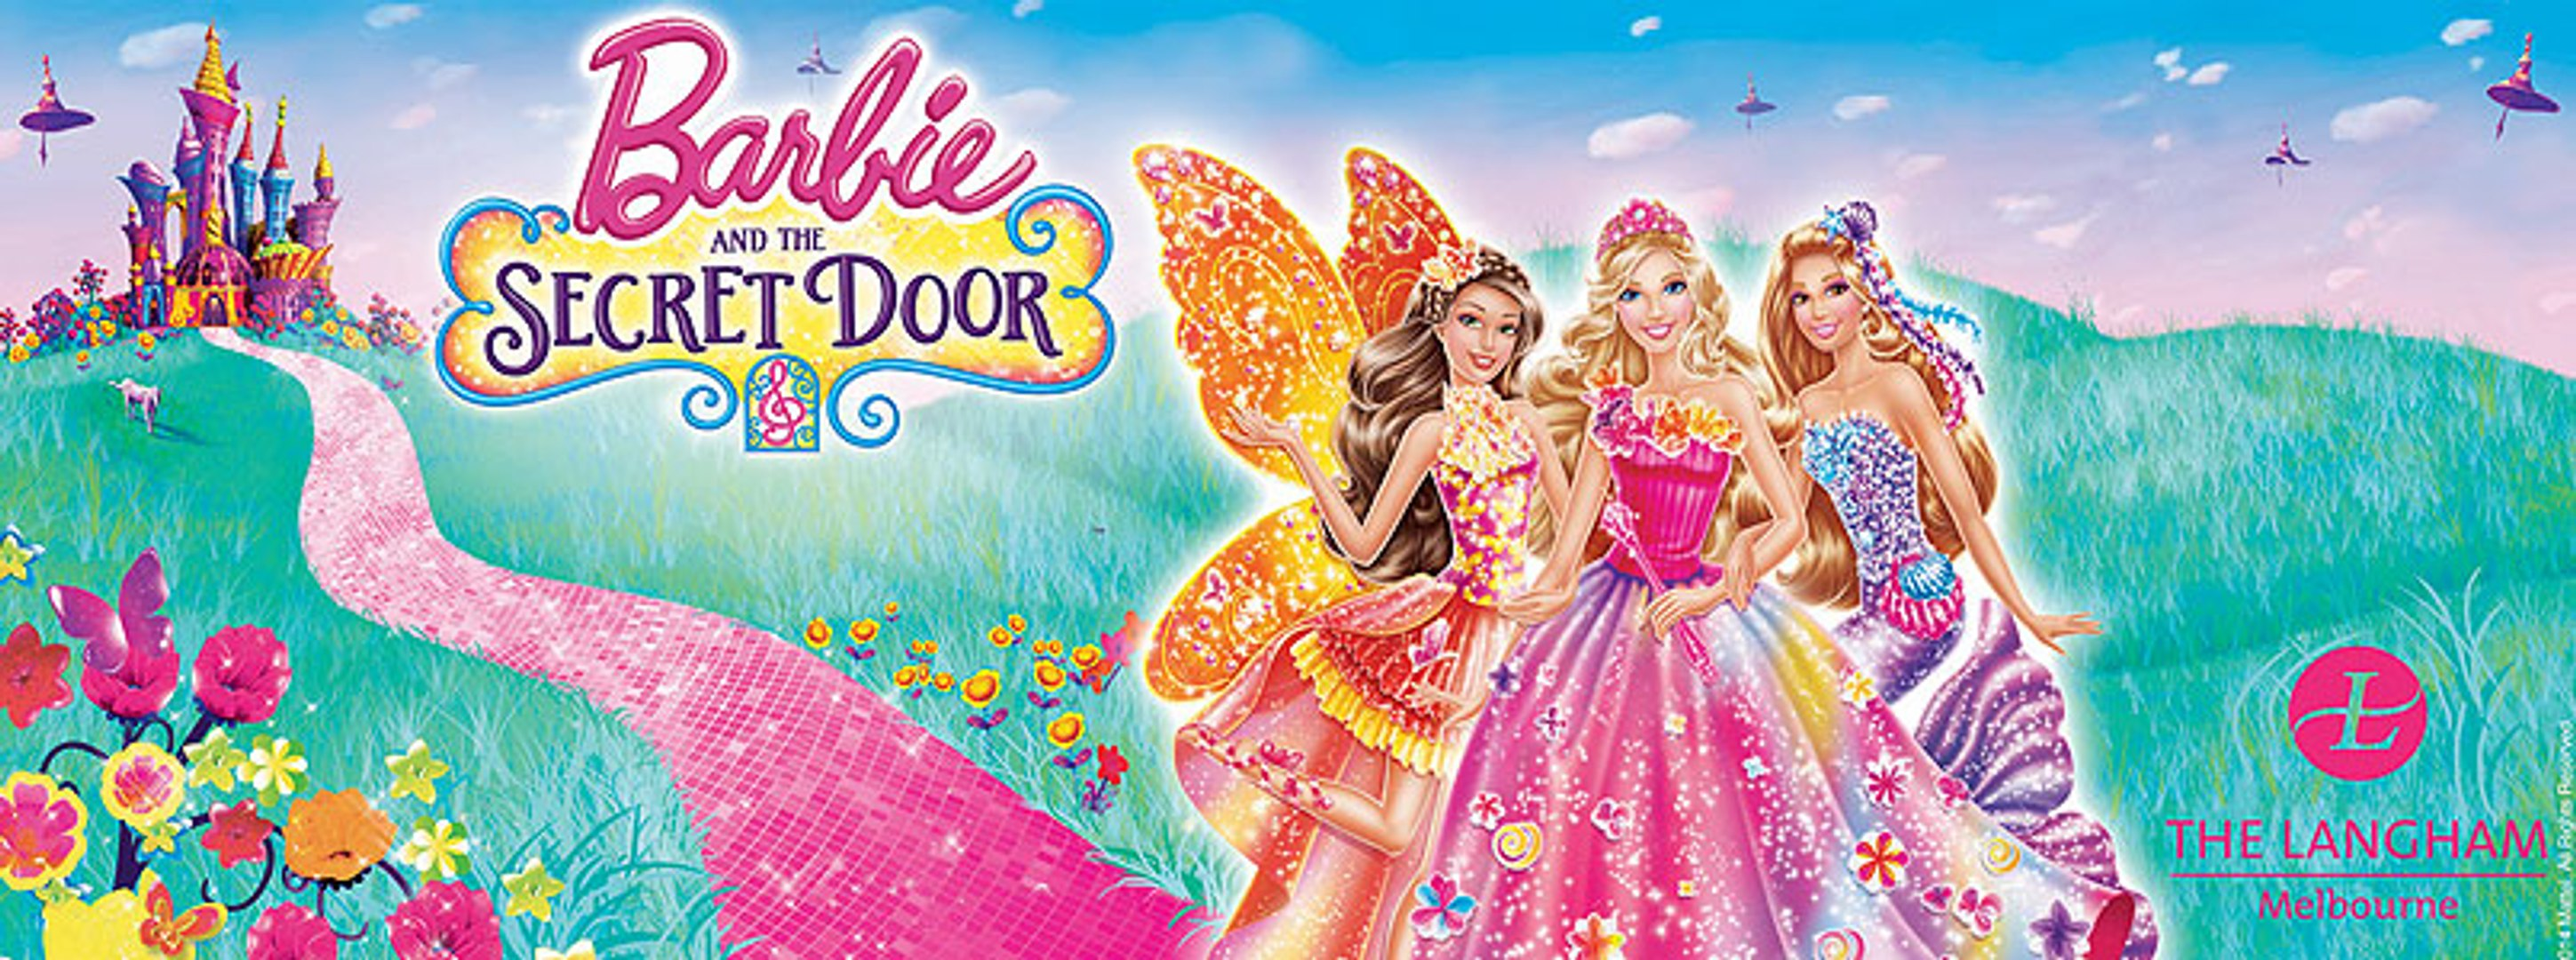 watch barbie and the secret door free